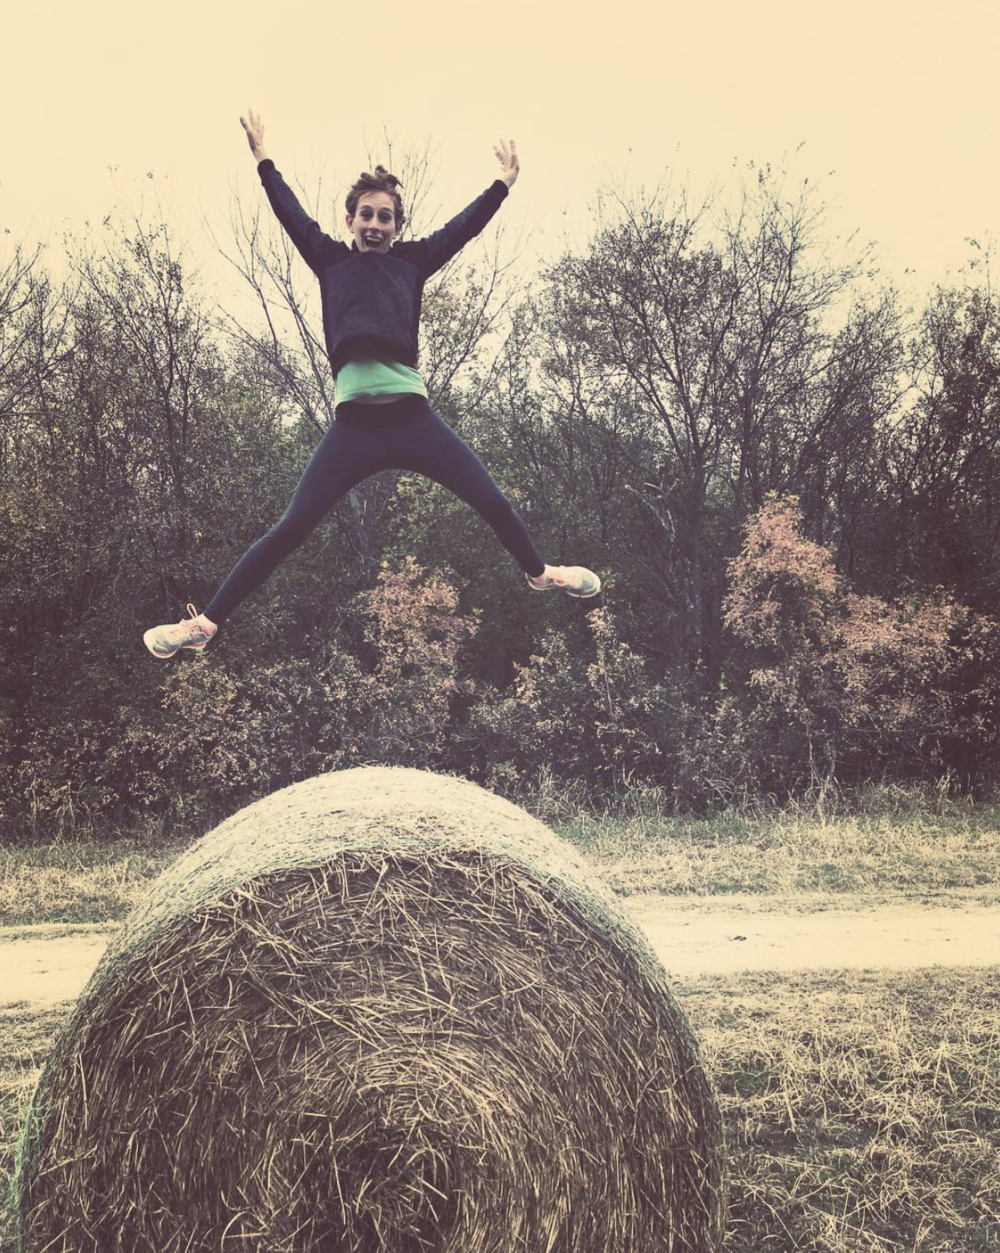 @candus813 and some hay bail jumping.